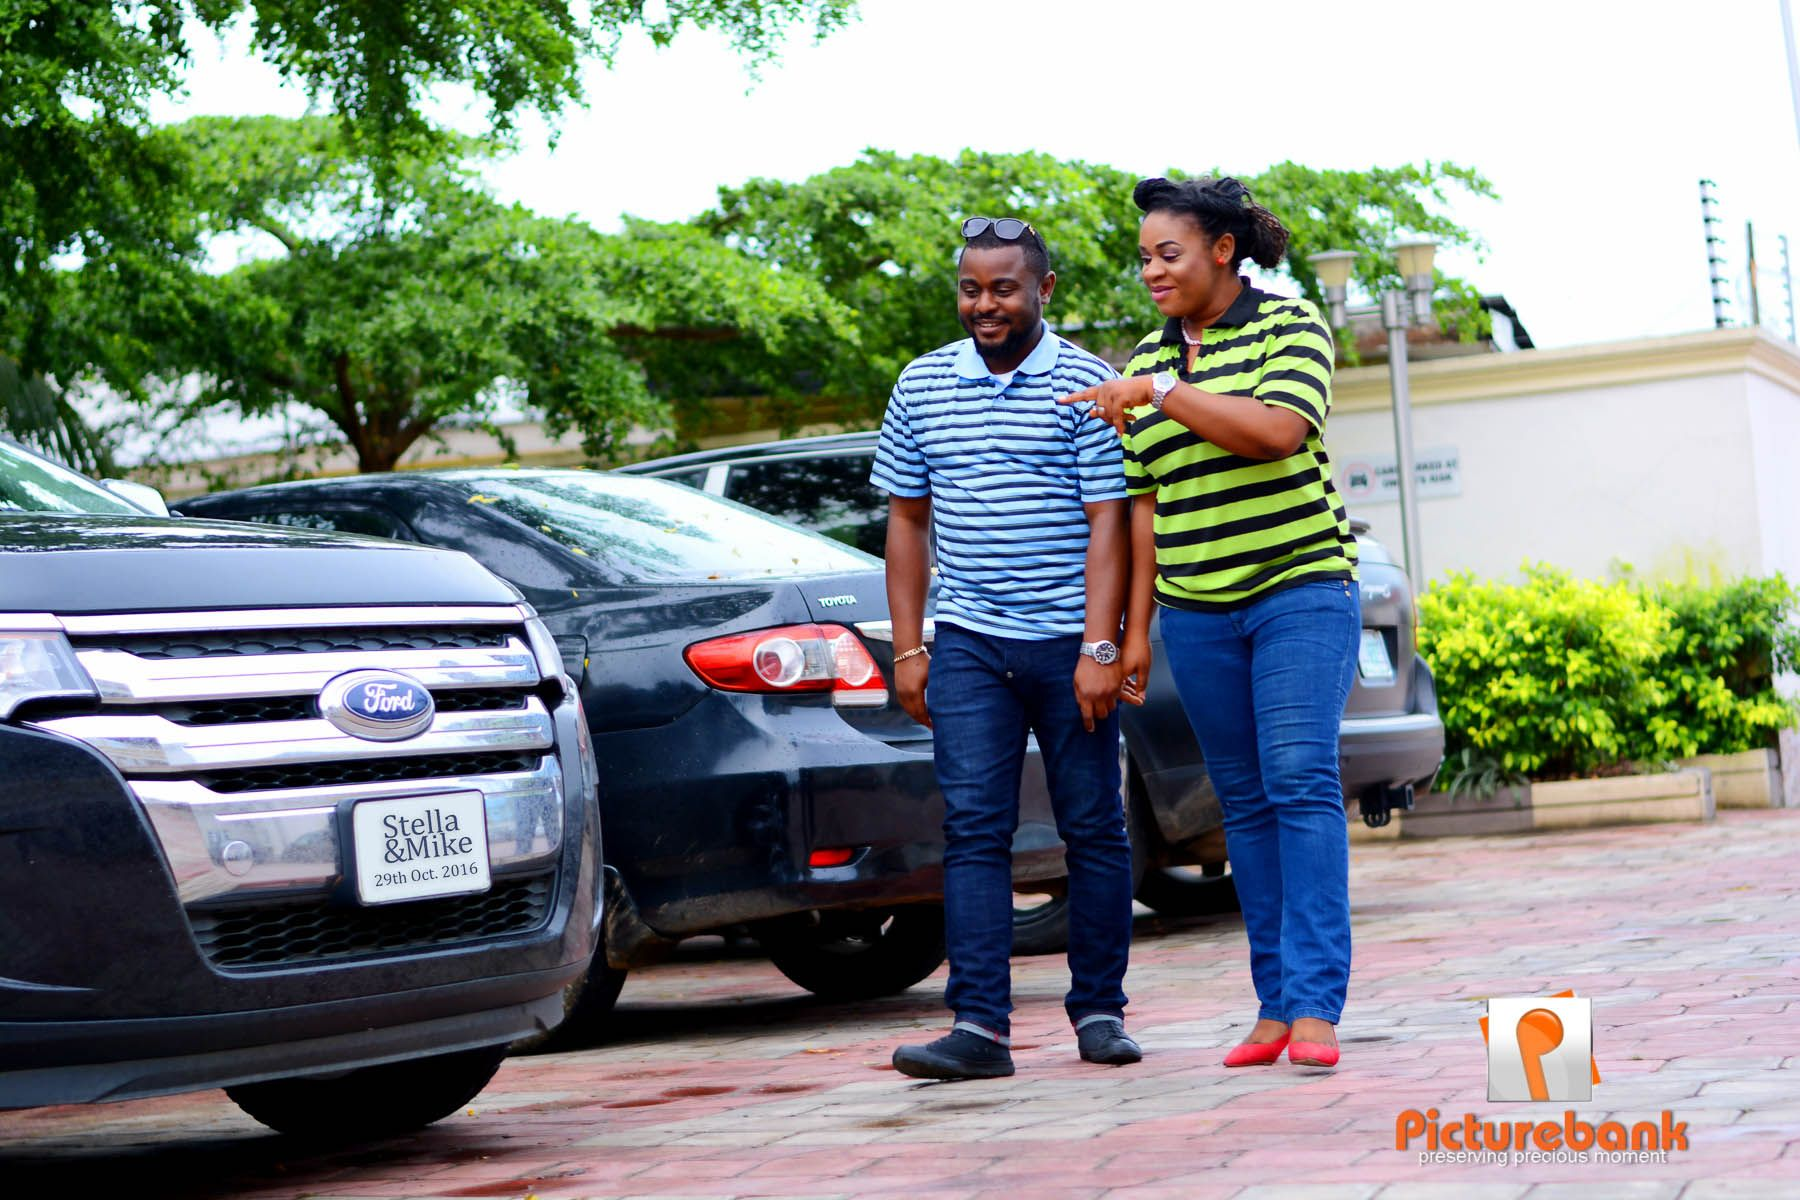 She was so excited after saying yes and can't wait for 29th 0ctober #picturebankng #picturebankpreweddings #picturebankweddings